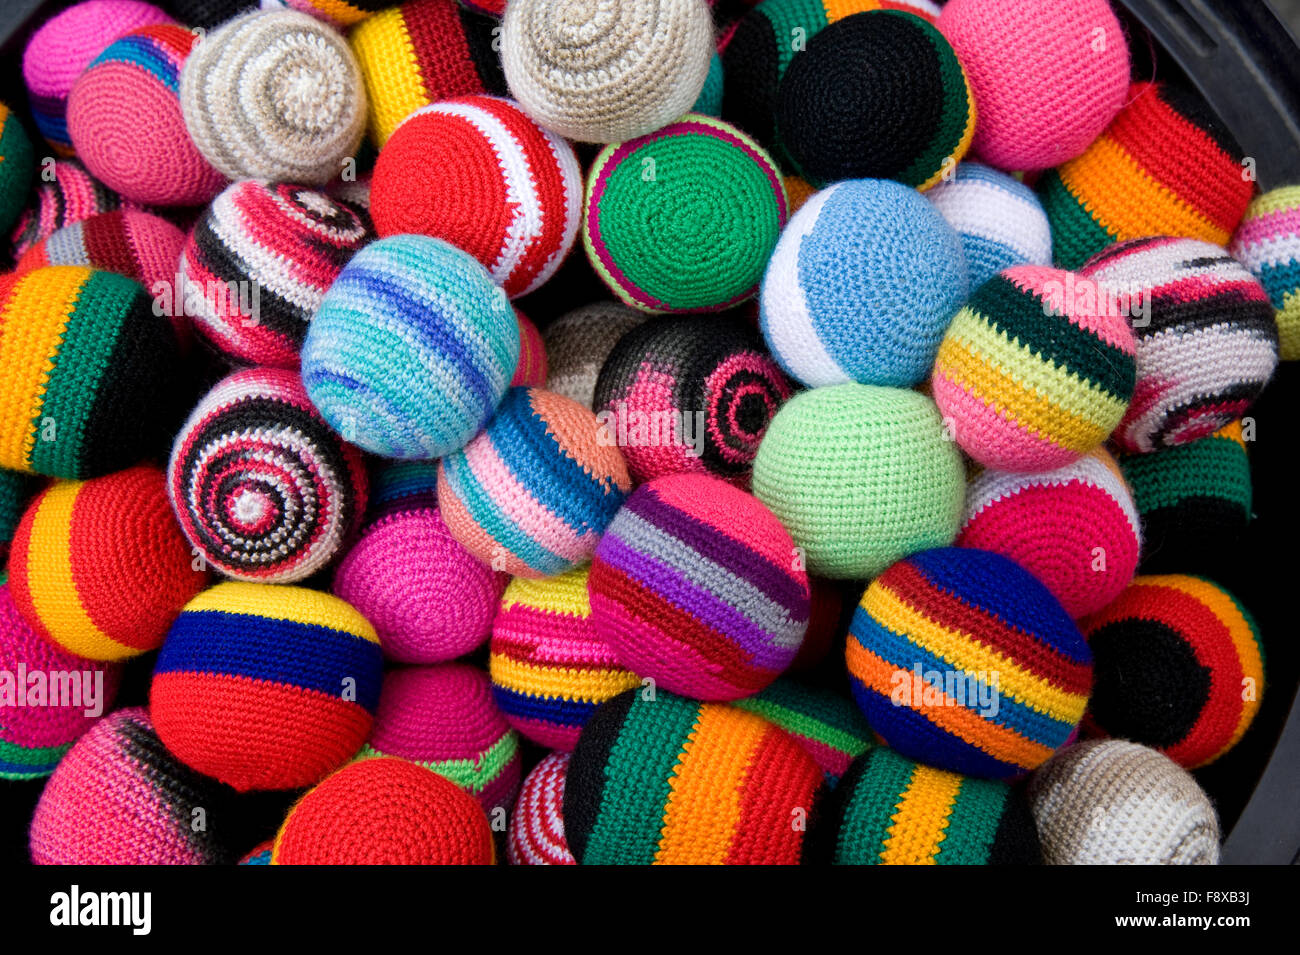 Colorful Fabric Balls On Display In Marketplace In Otavalo Ecuador Stock Photo Alamy